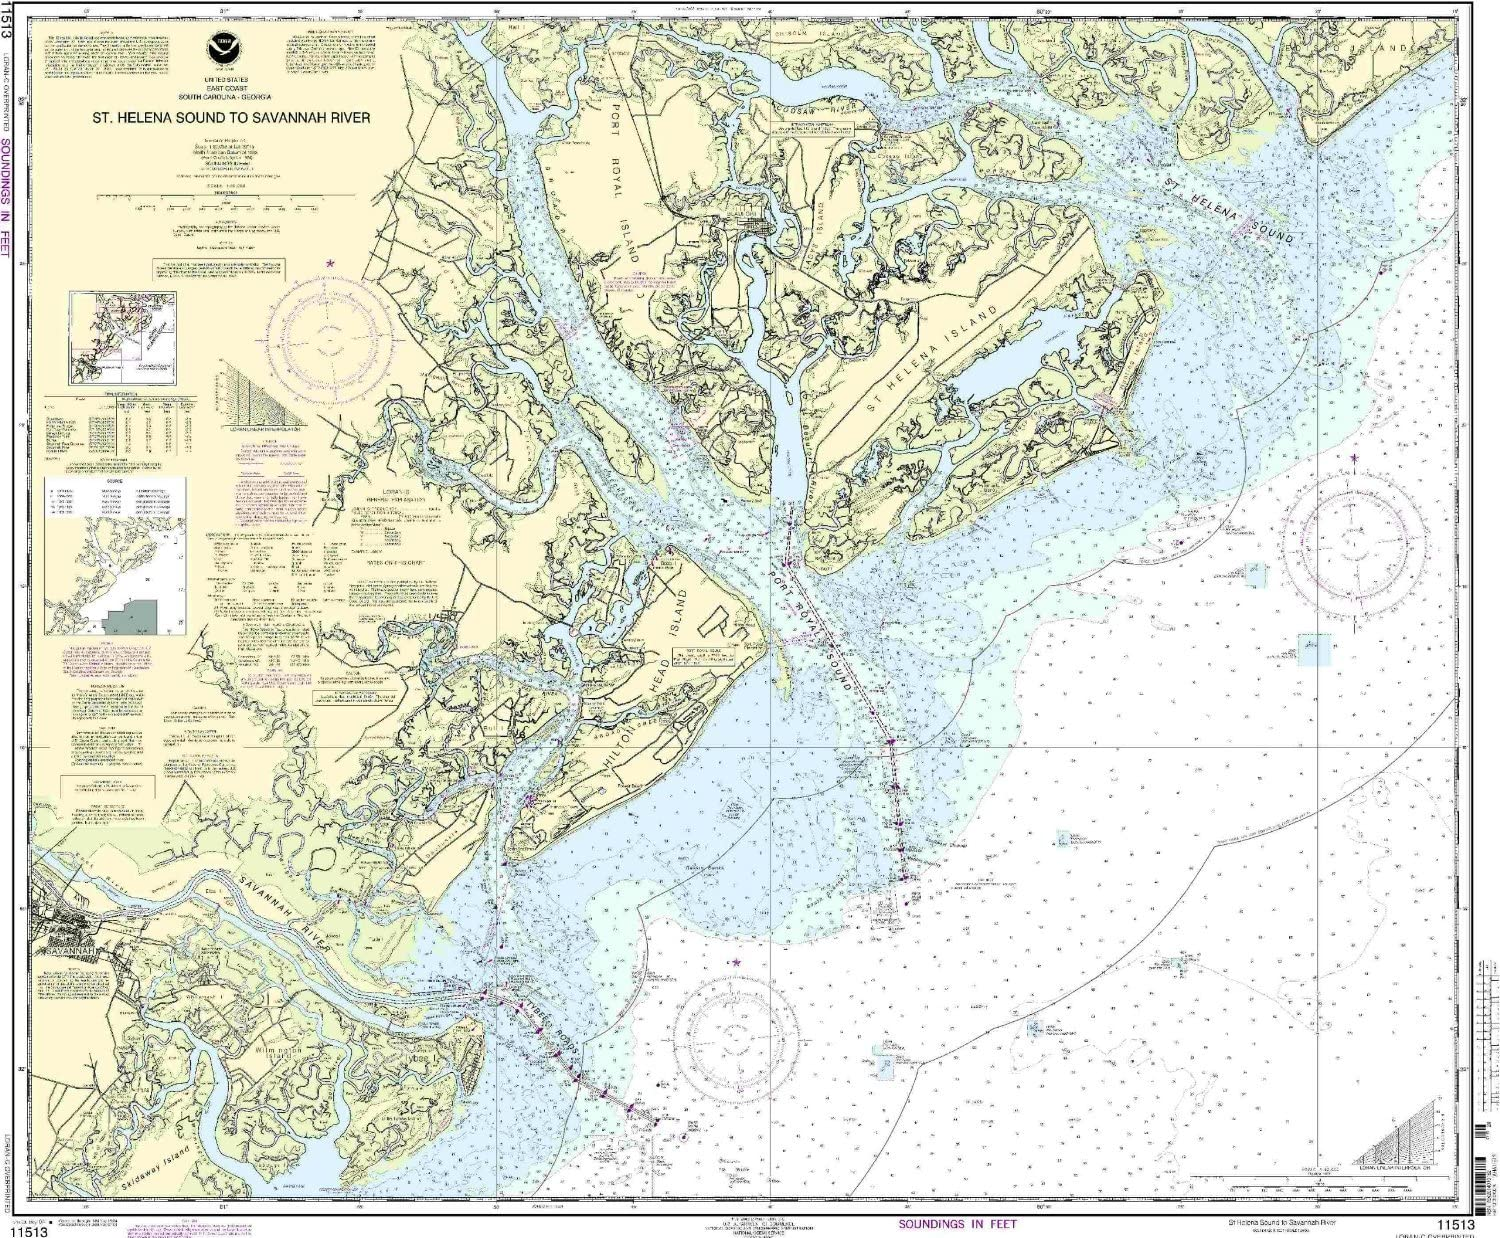 NOAA Ranking TOP2 11513-St. Helena Sound River Savannah All items free shipping to